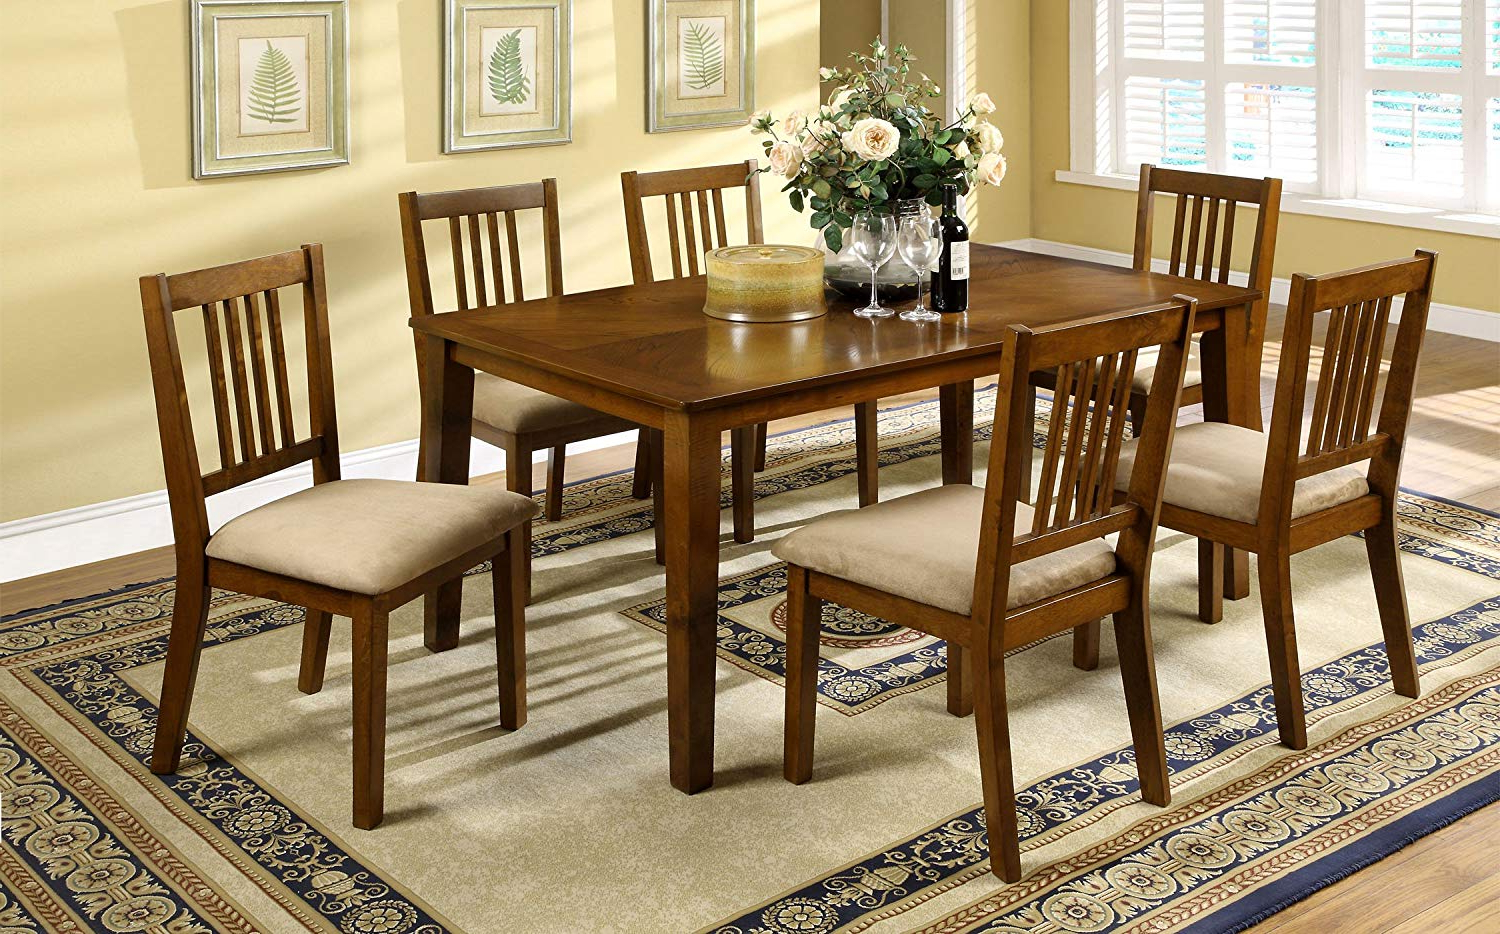 2019 Calla 5 Piece Dining Sets In Amazon – Furniture Of America Erin 7 Piece Dining Table Set (View 12 of 25)